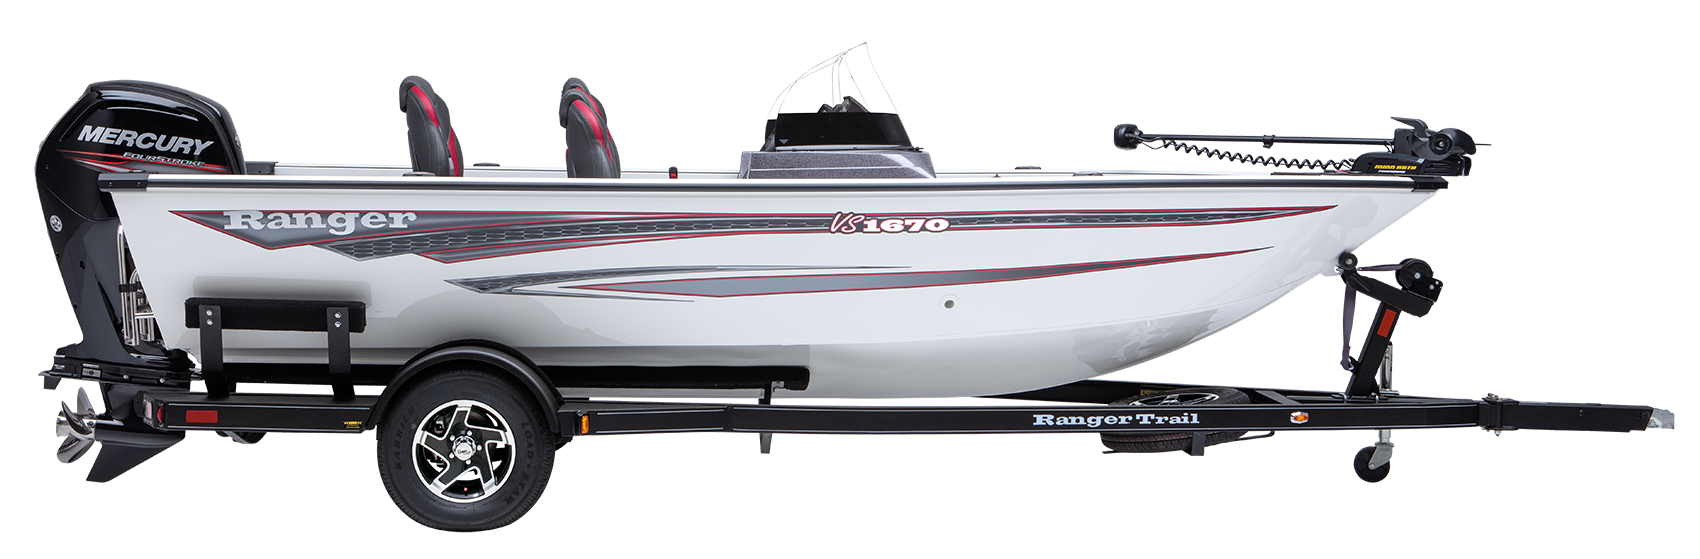 Ranger VS1670DC Aluminum deep V fishing boat